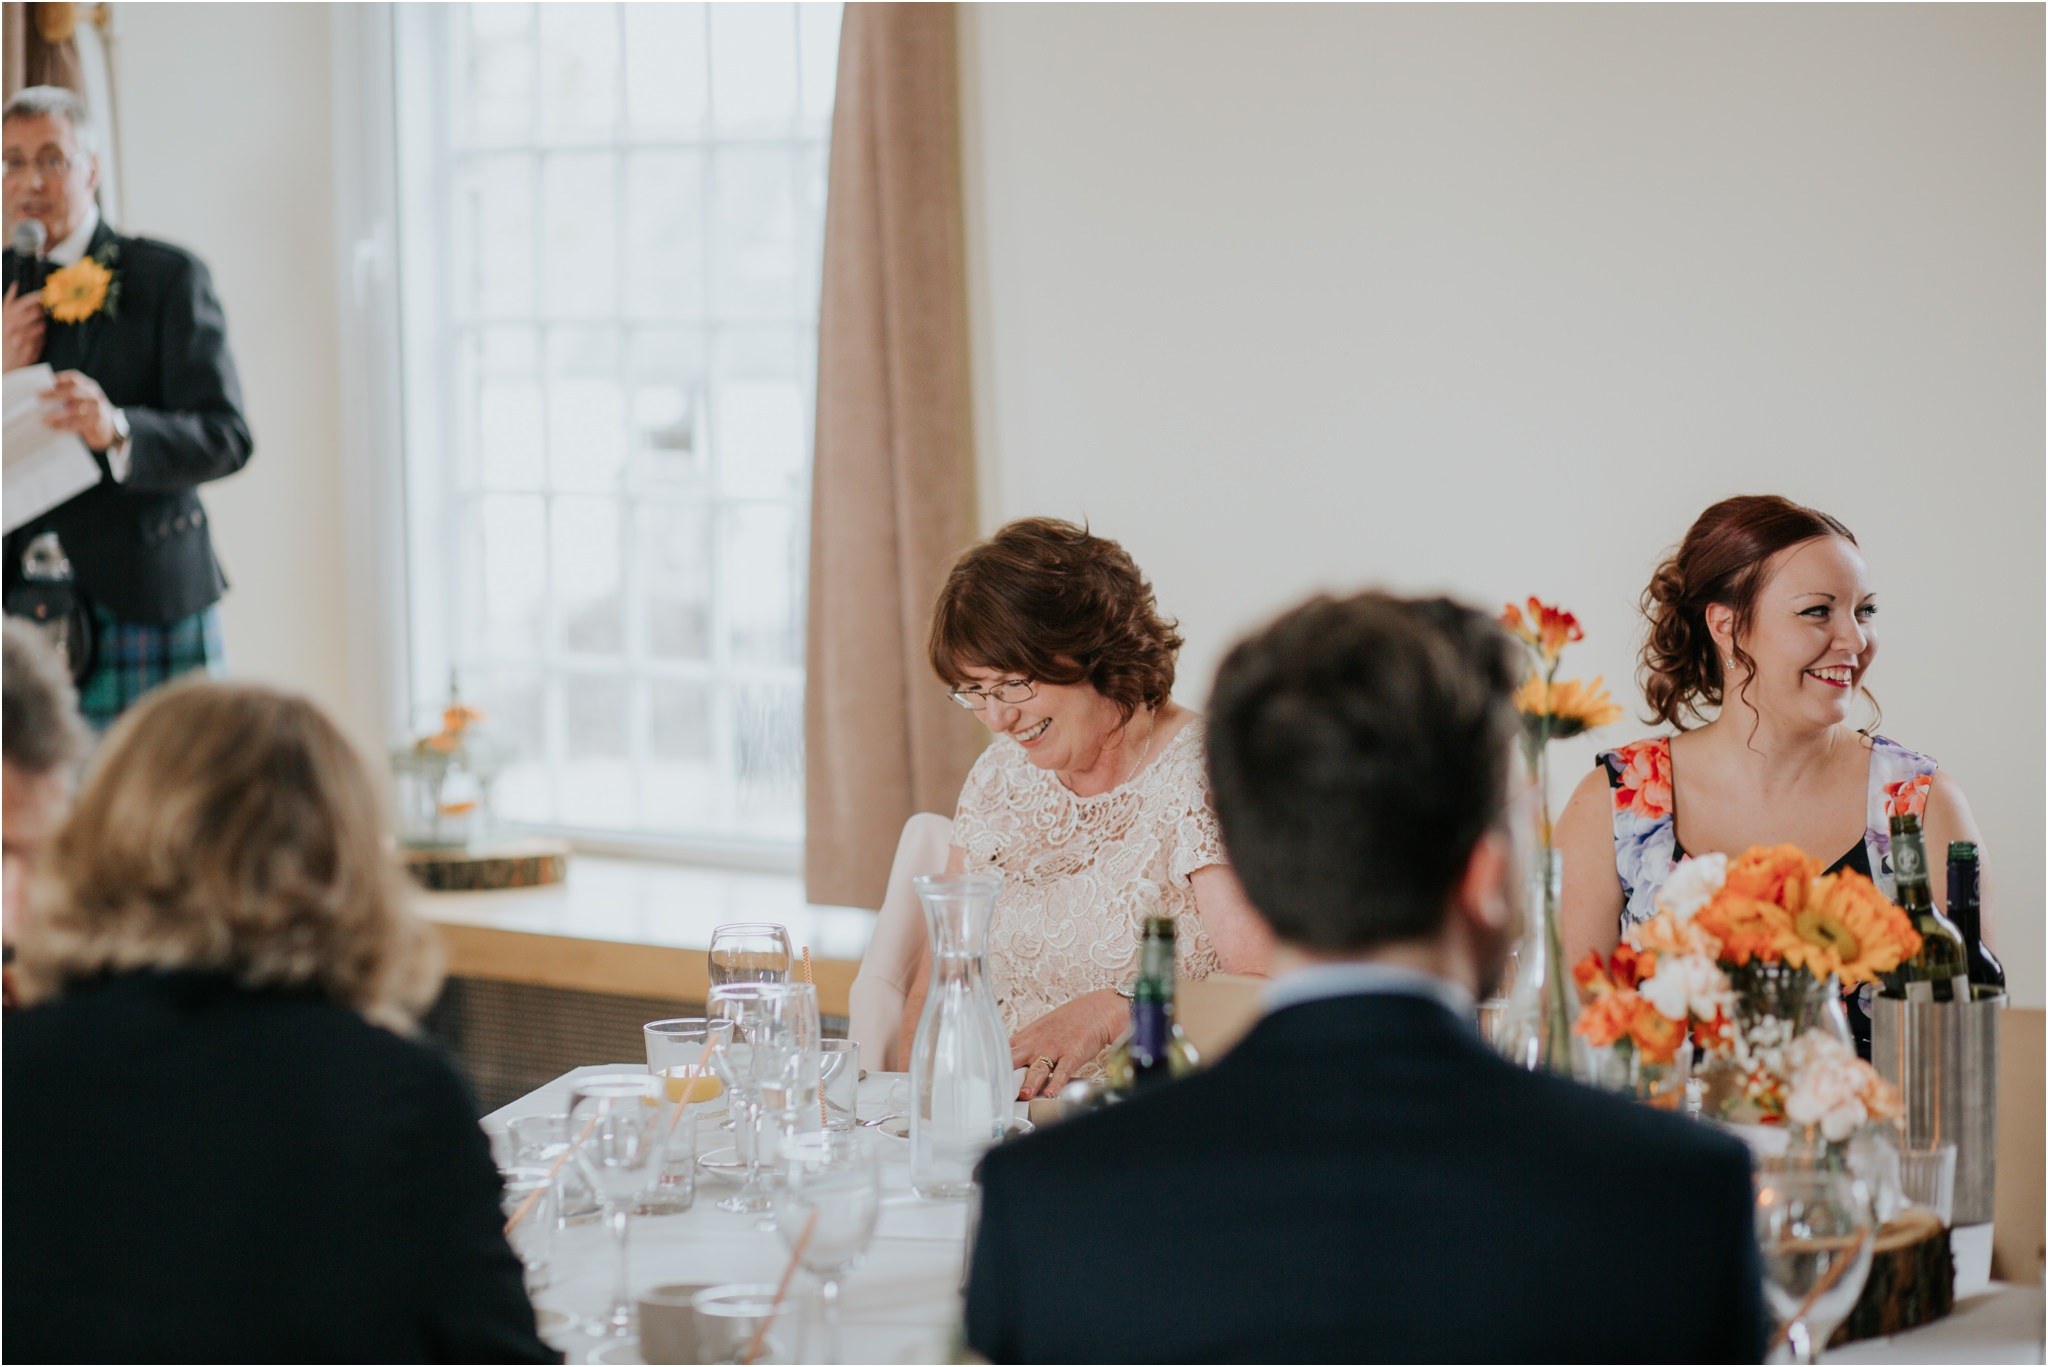 Photography 78 - Glasgow Wedding Photographer - Fraser Thirza - Killearn Village Hall - Three Sisters Bake Wedding_0123.jpg